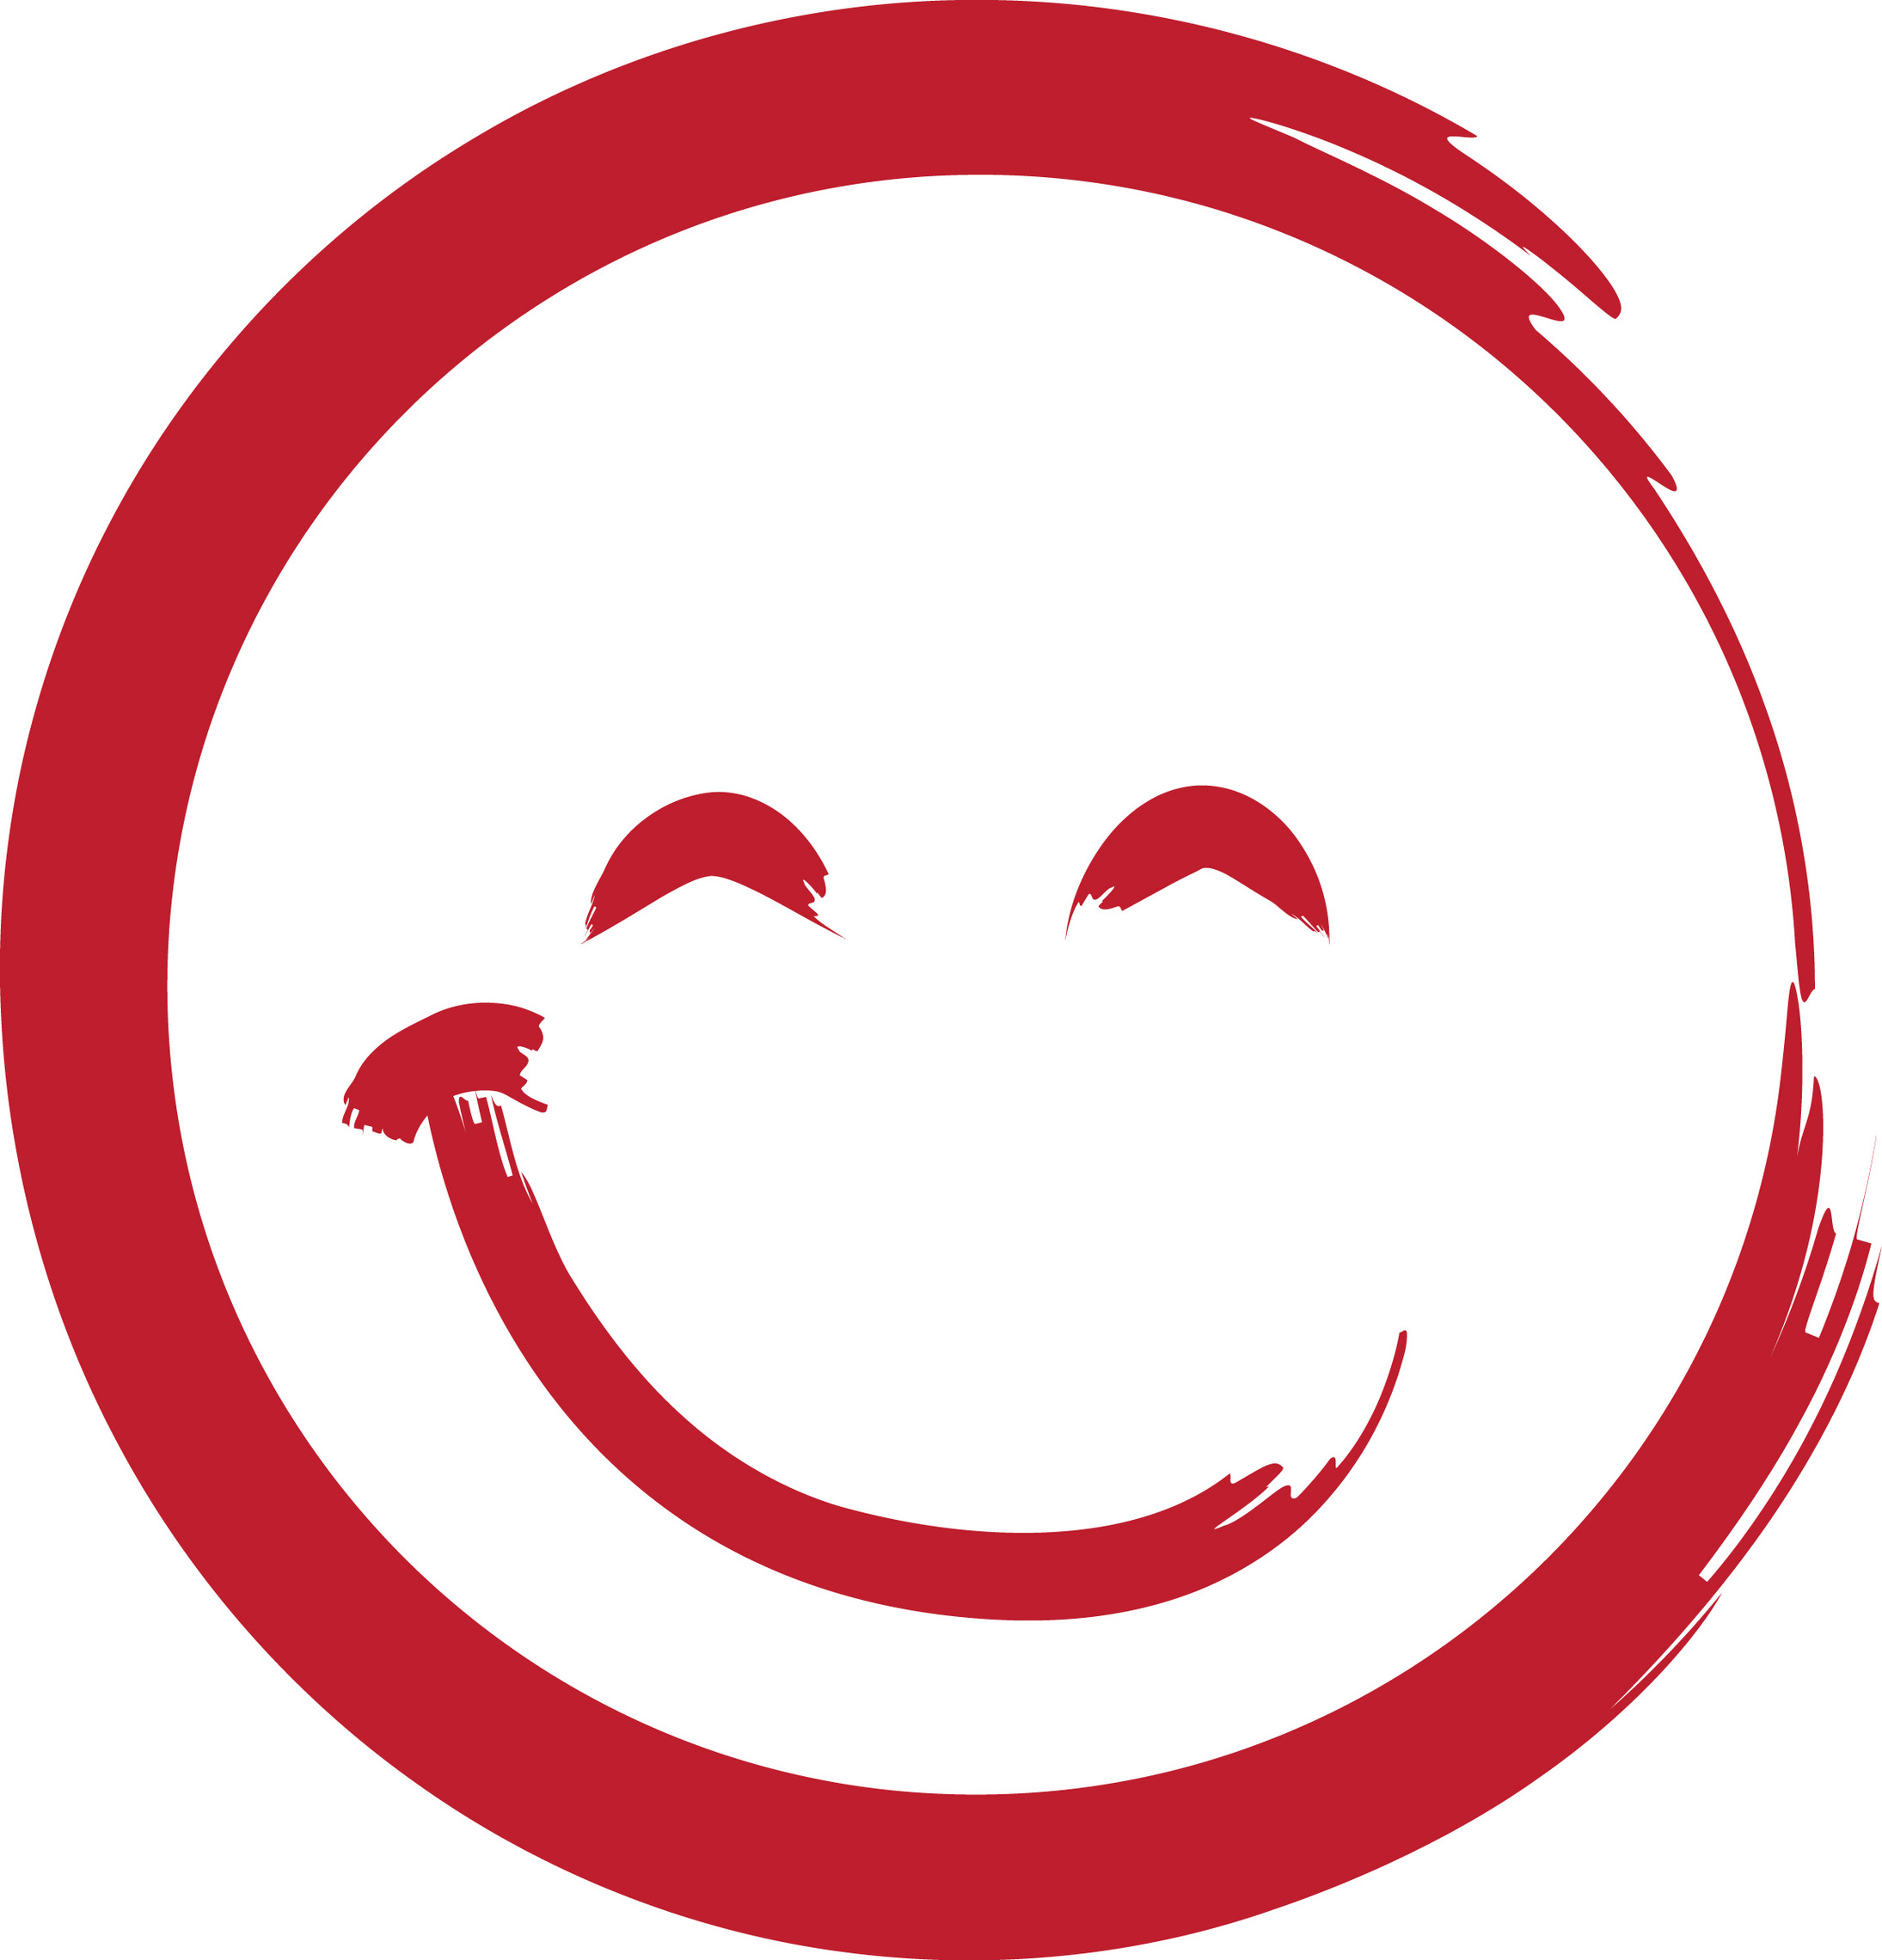 Red Smiley Faces Clip Art.